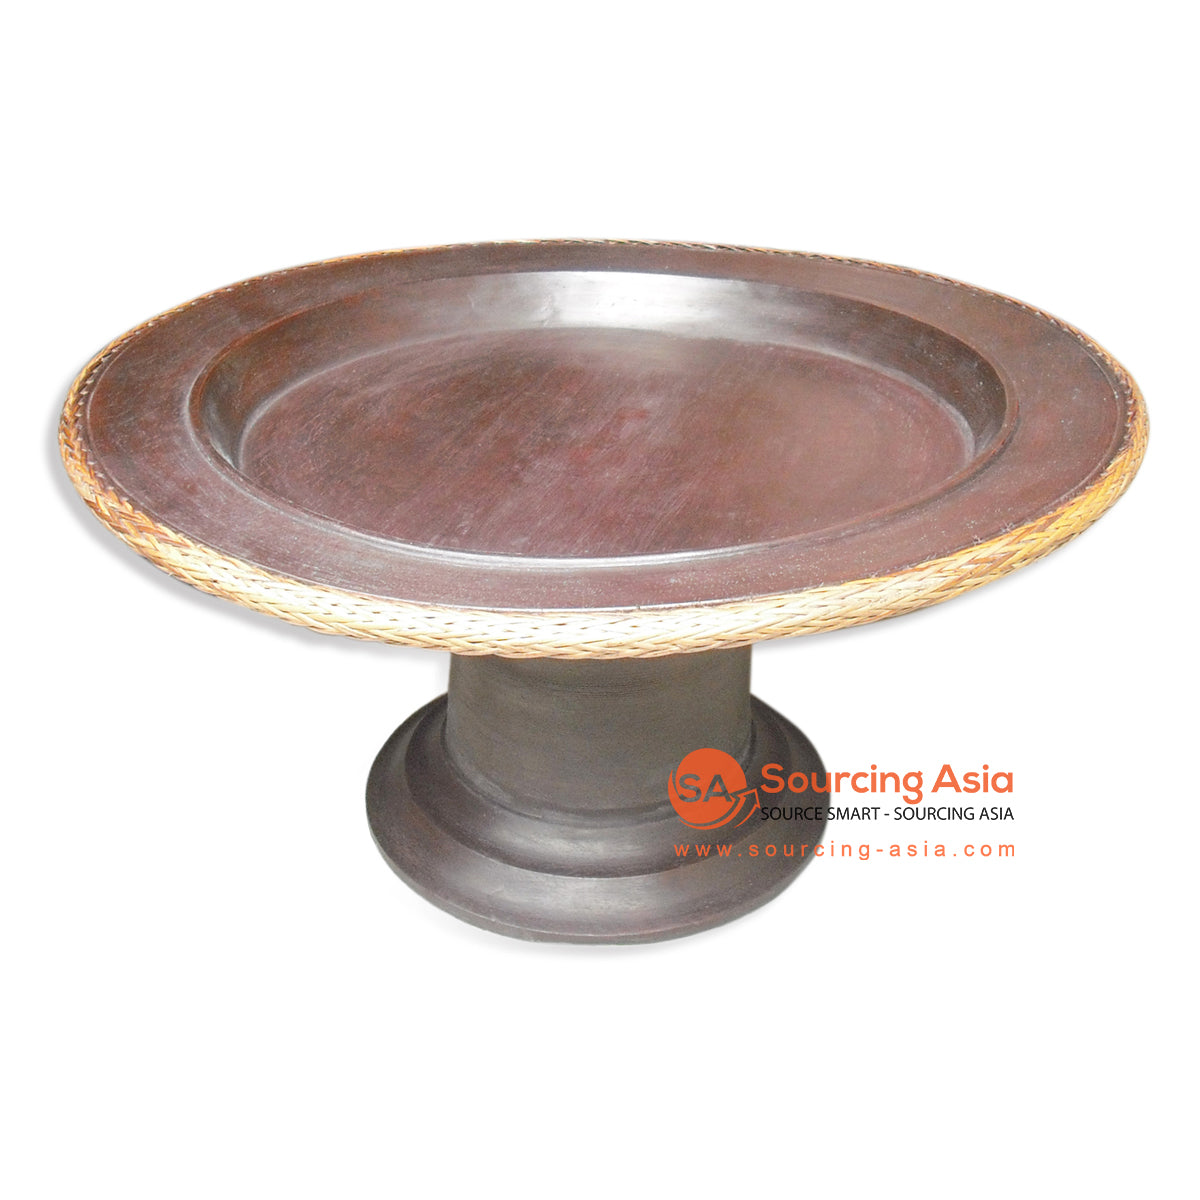 PPN011 WOODEN DULANG OFFERING TRAY